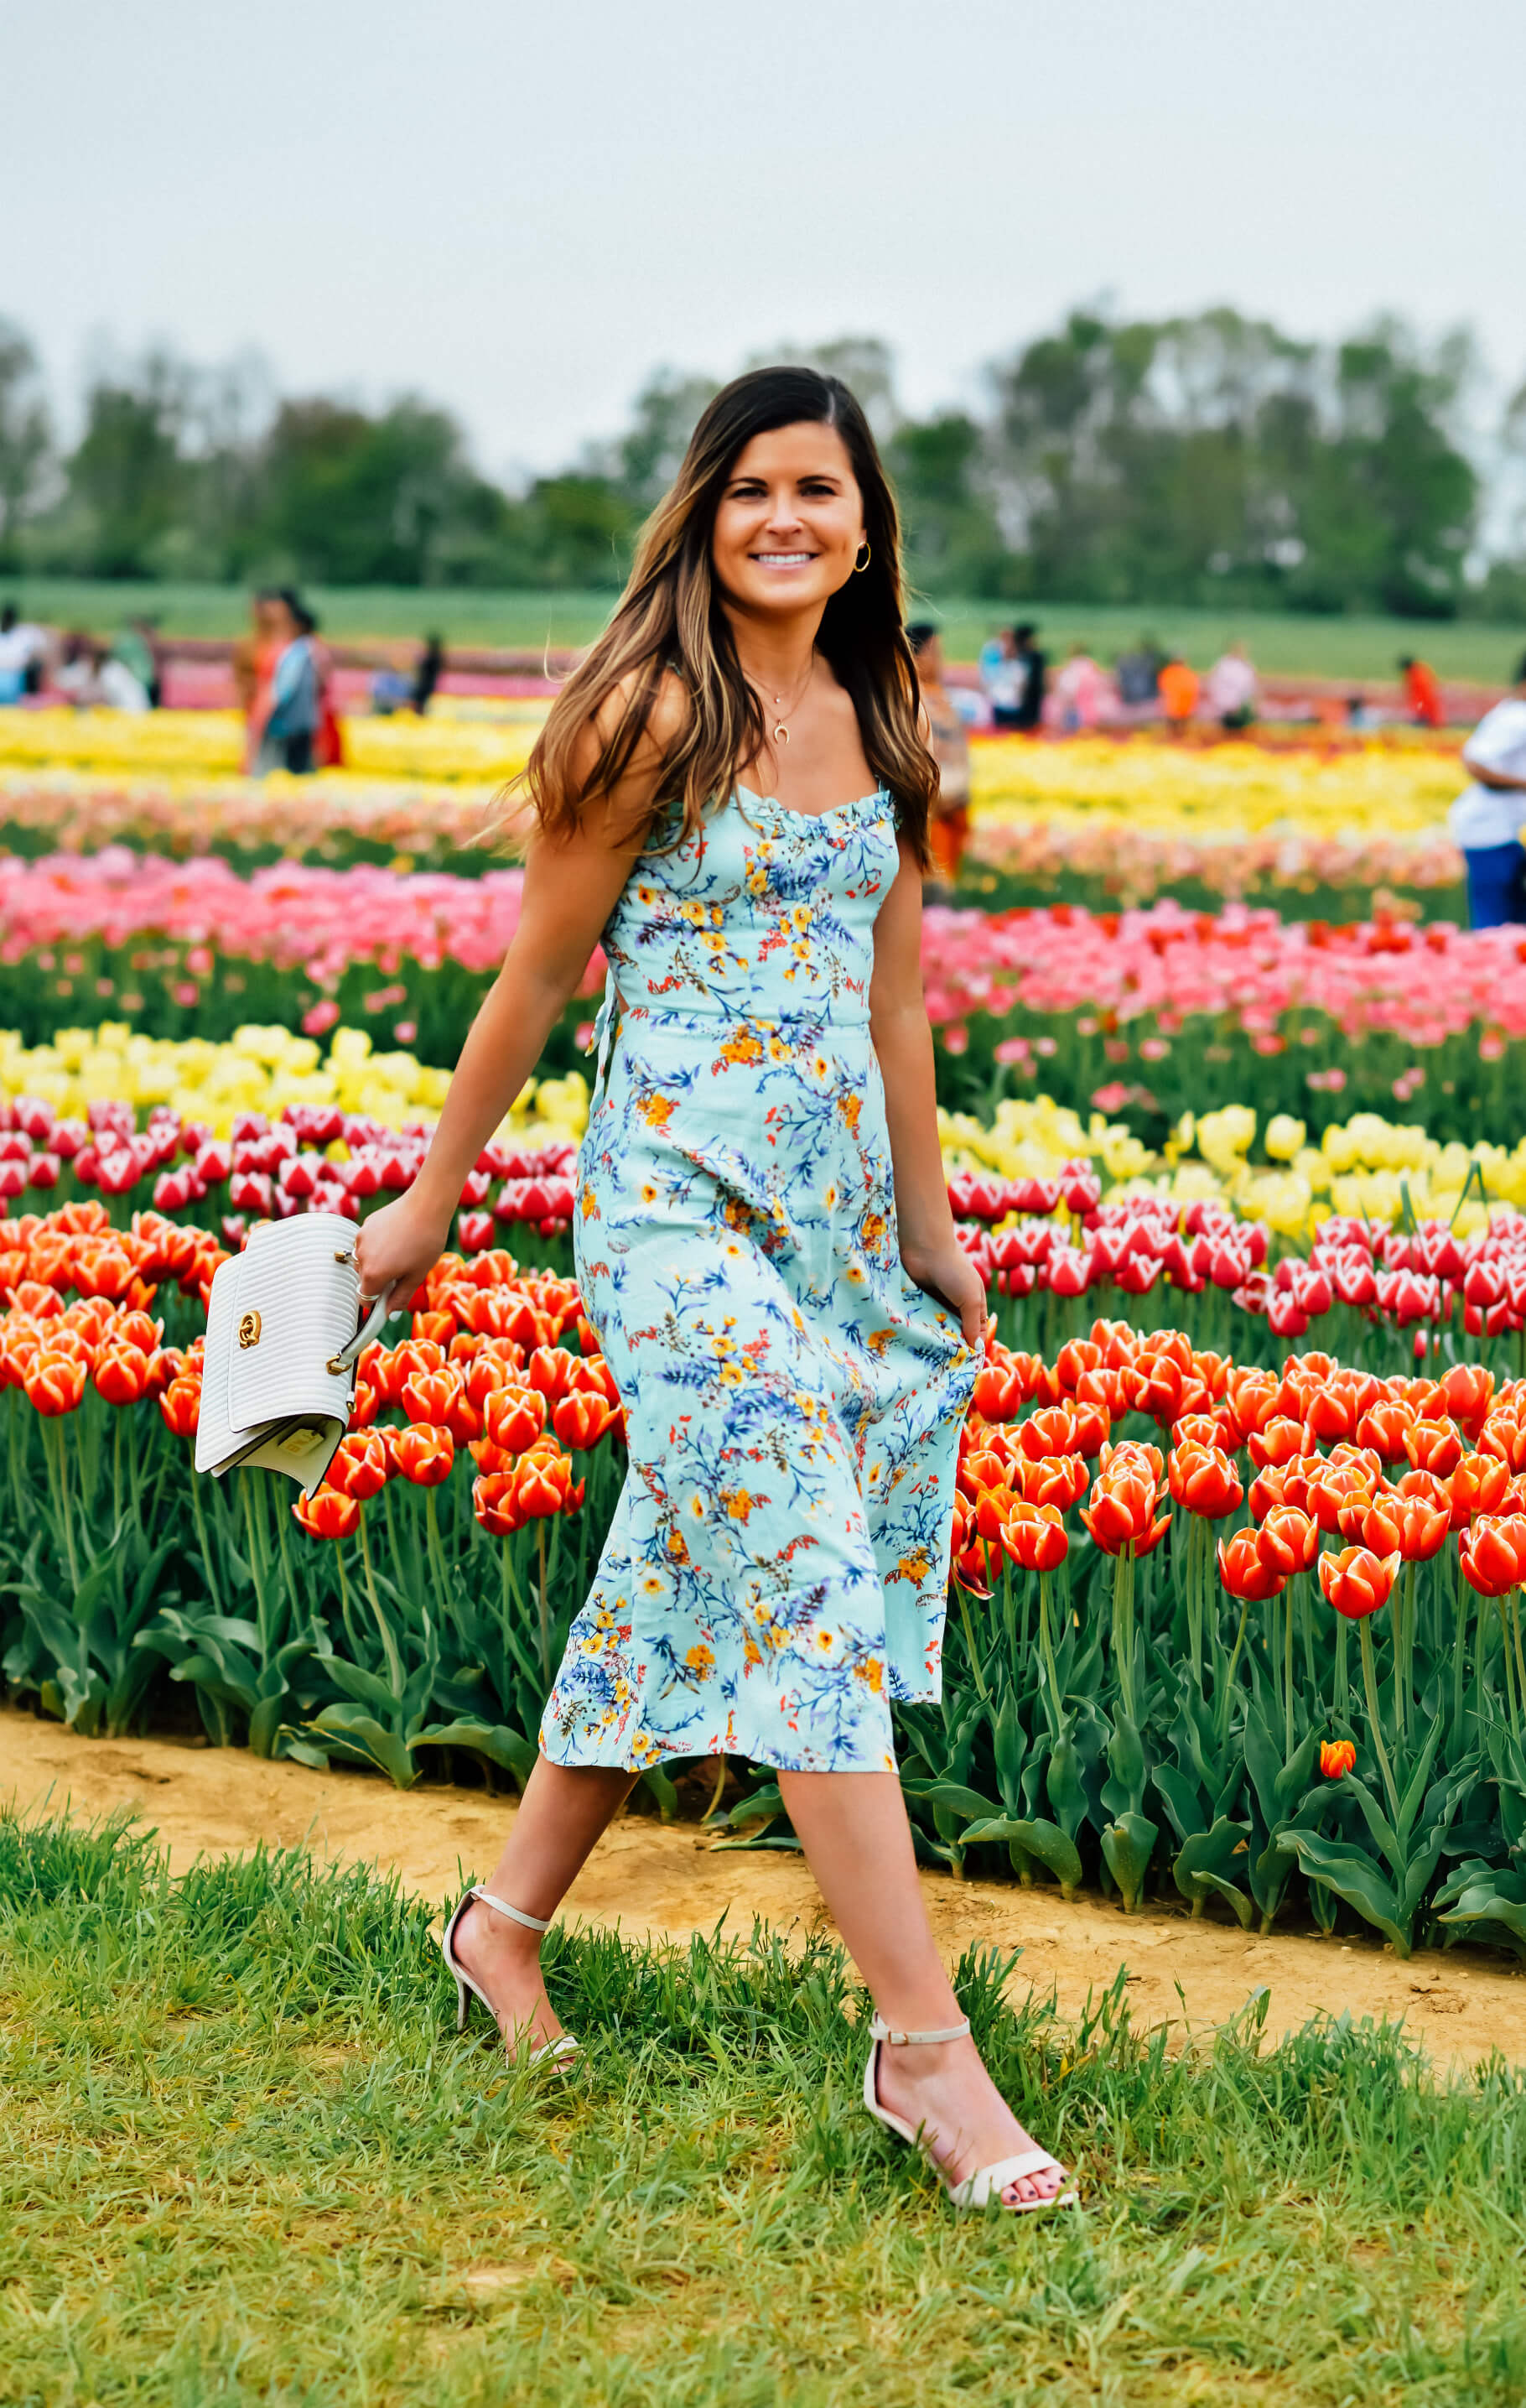 LULUS SUNNY MEADOW SAGE GREEN FLORAL PRINT TIE-BACK MIDI DRESS, garden party dress, spring party dress, spring floral print dress, Coach Parker Top Handle White Quilted Bag, Holland Ridge Farm Tulip Festival, Tilden of To Be Bright